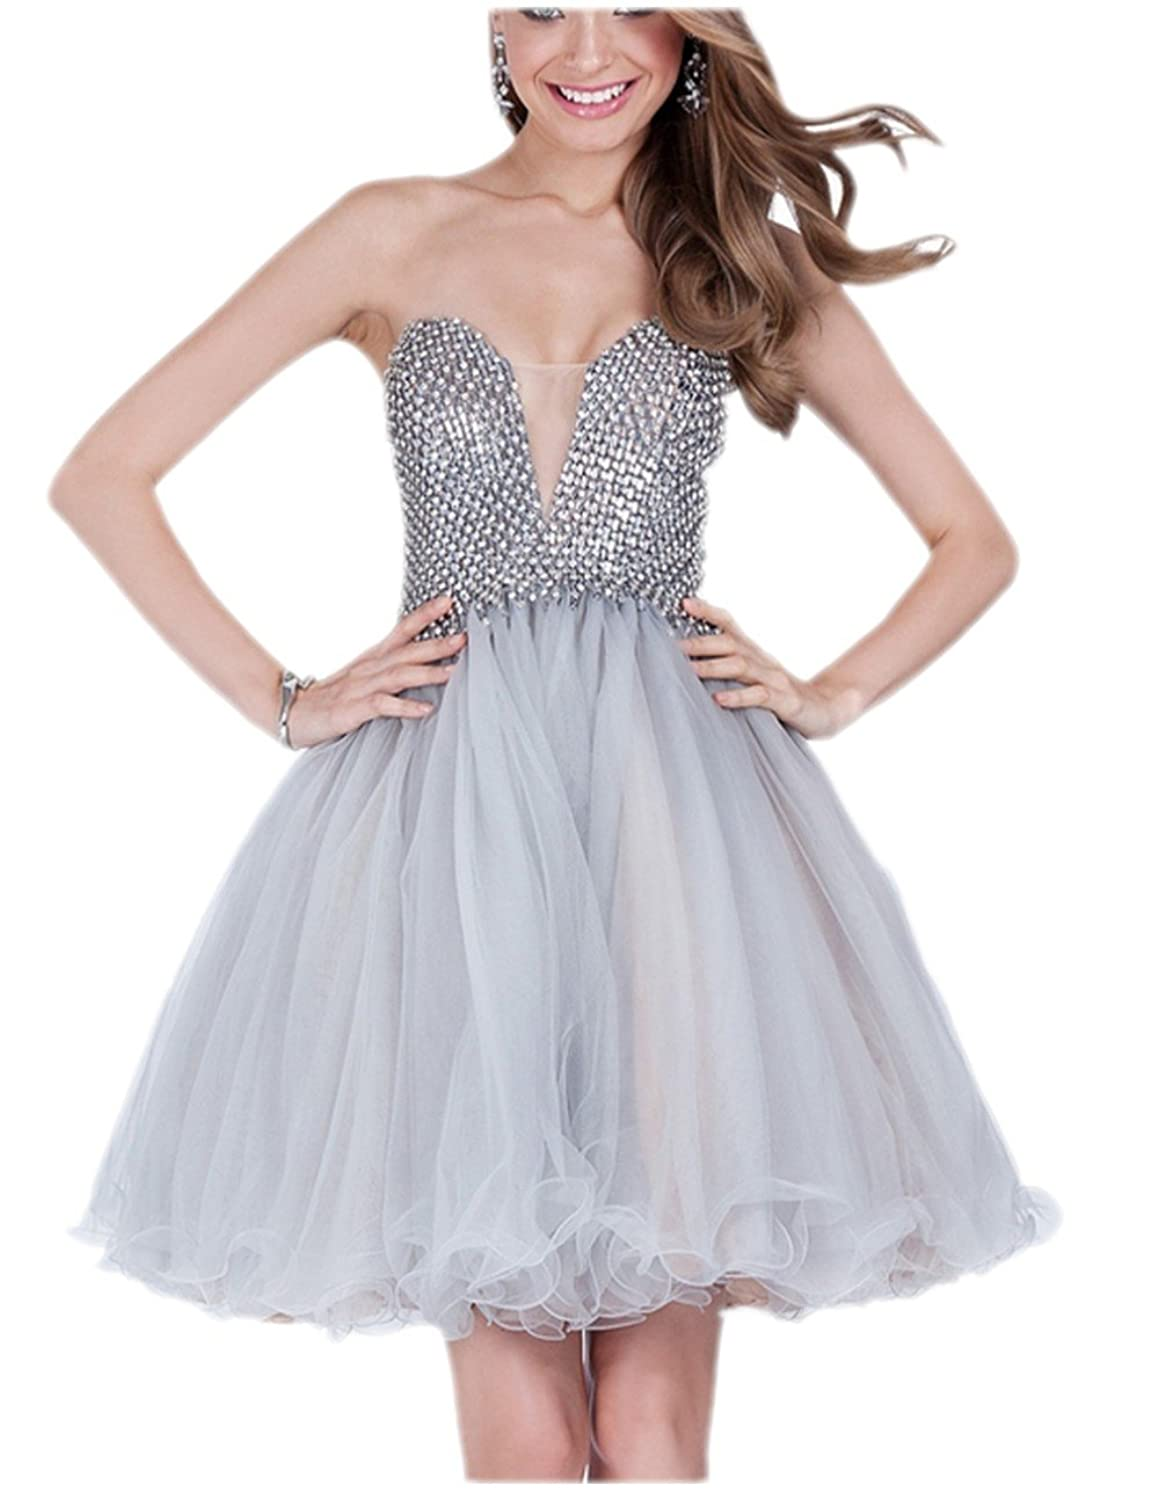 A-line Organza Girls Homecoming Dresses Beaded Bodice Short Party Gowns